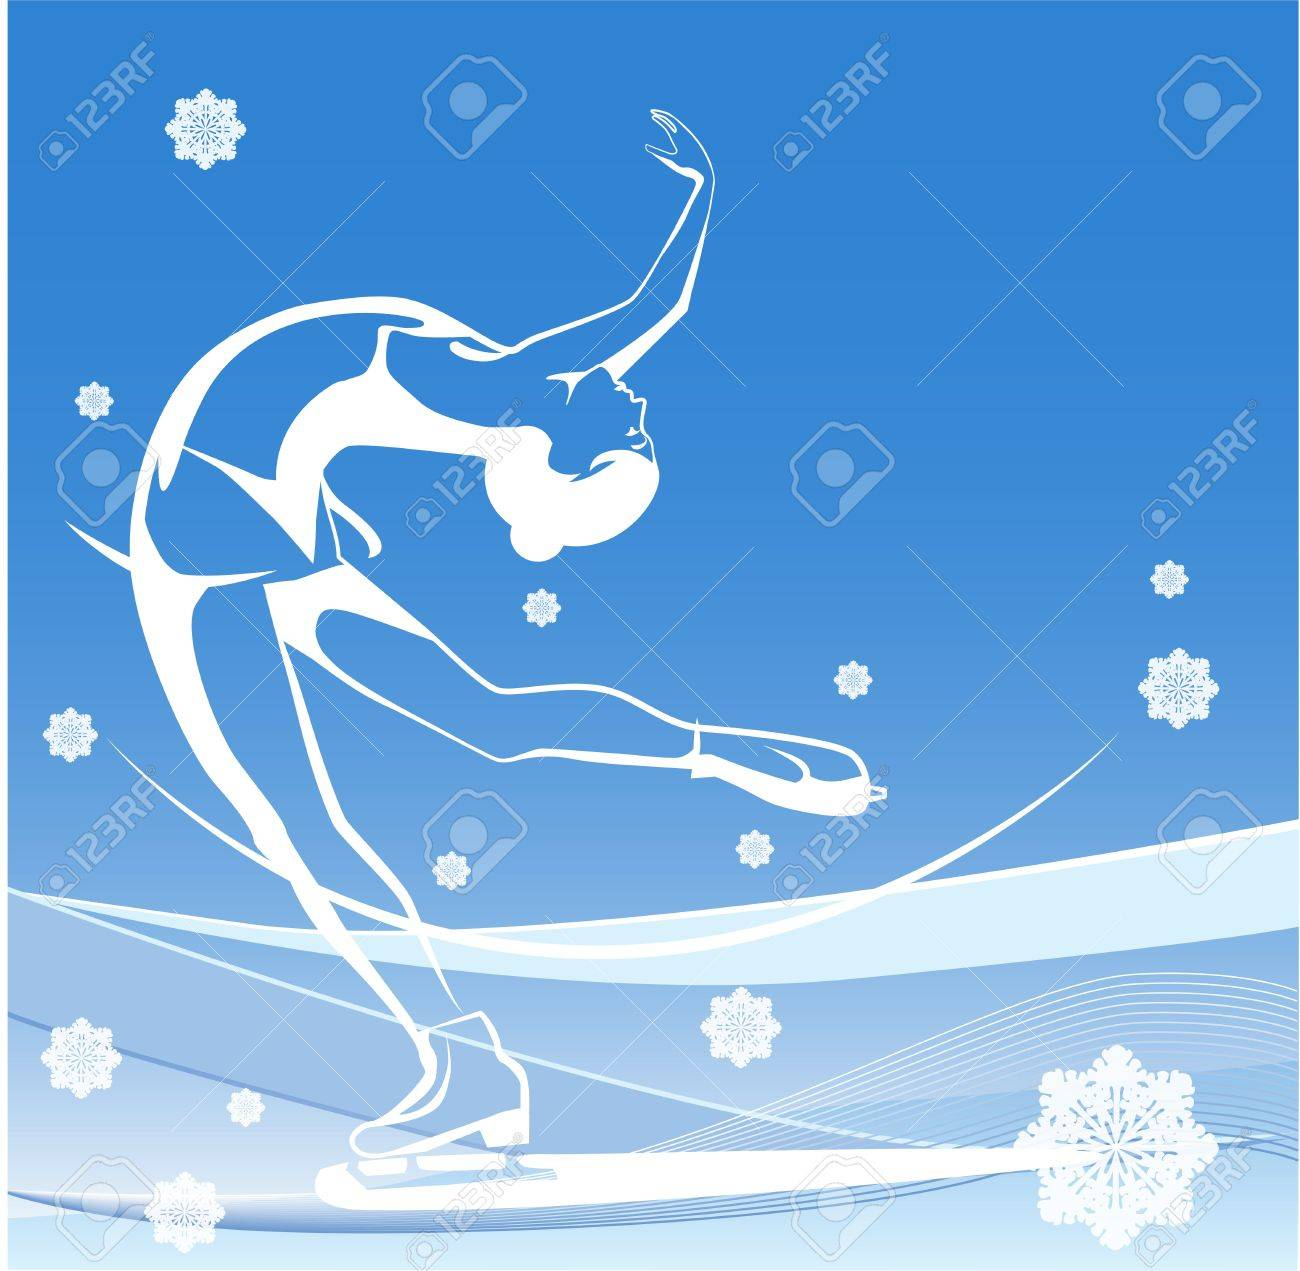 Winter sport. Ladies figure skating.  Ice show. Stock Vector - 10721117